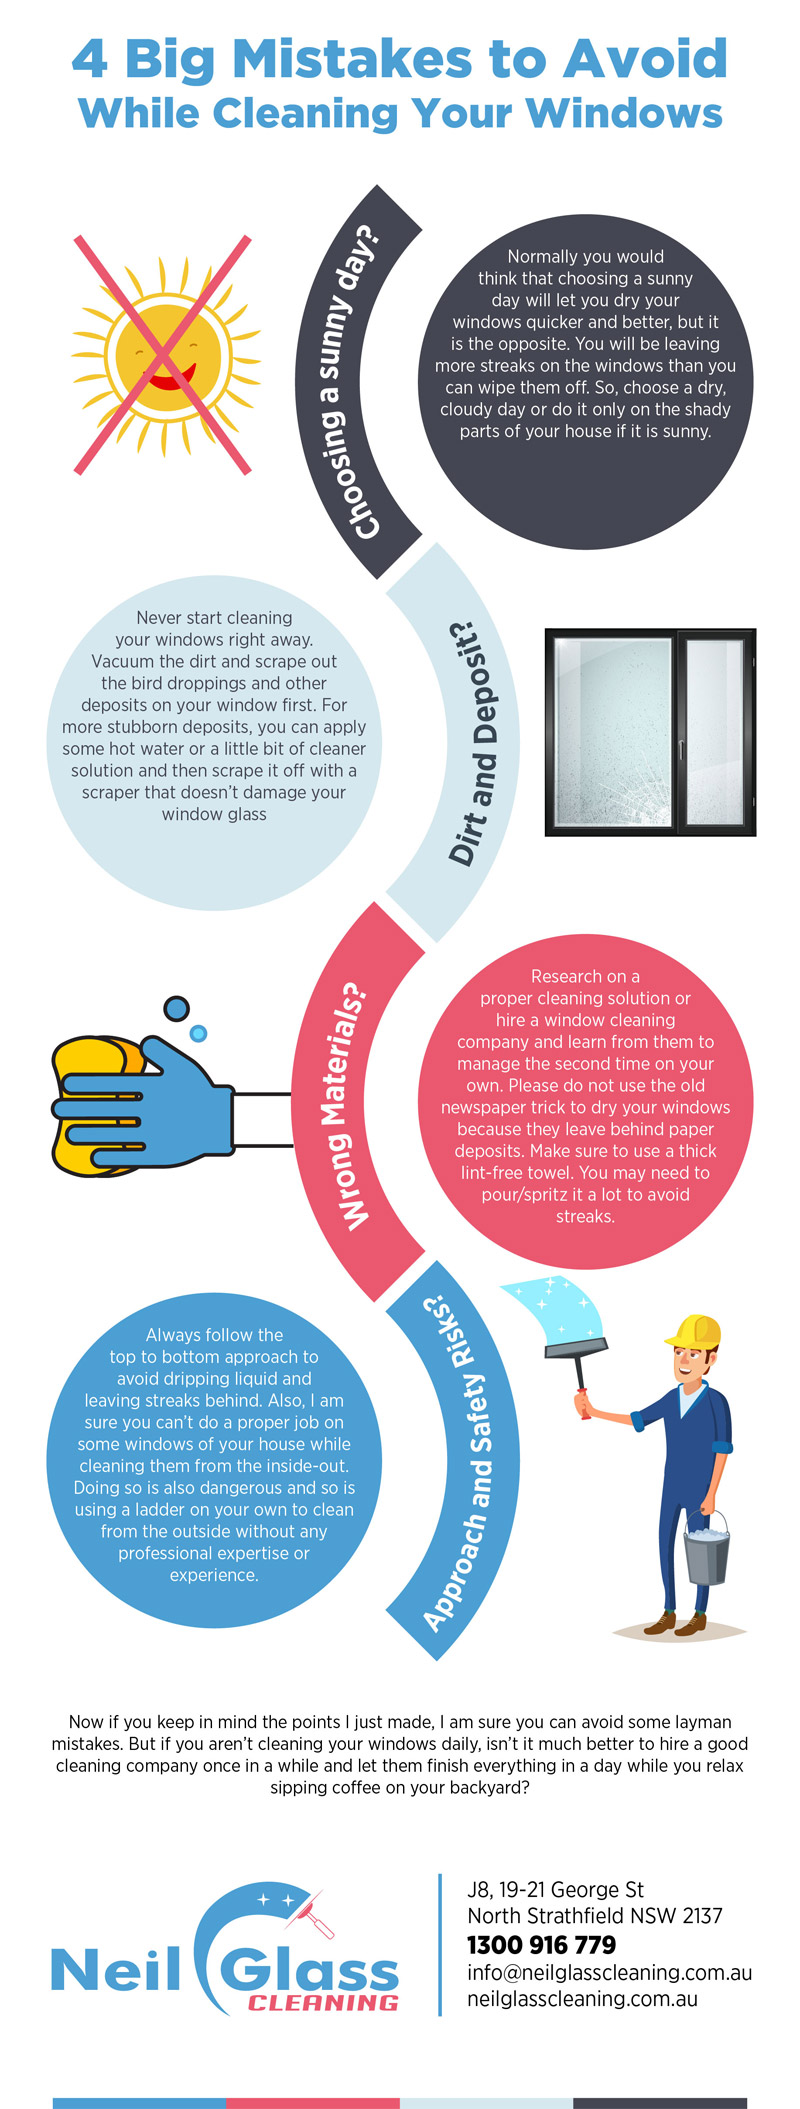 4 Big Mistakes to Avoid While Cleaning Your Windows